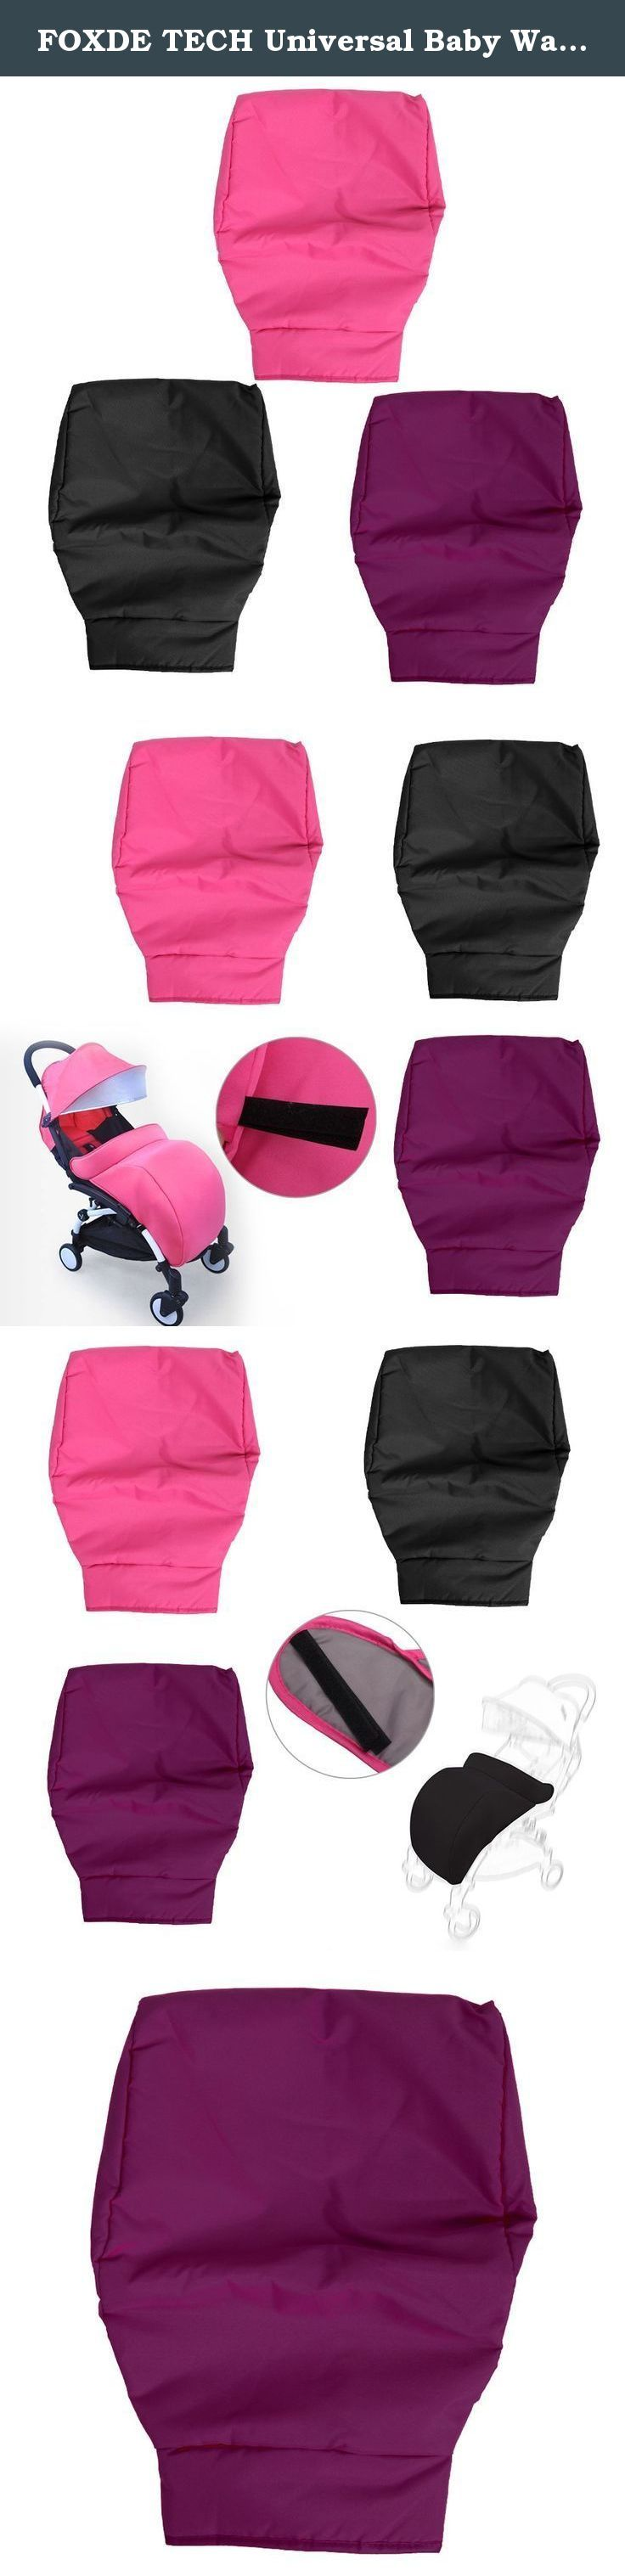 FOXDE TECH Universal Baby Warm Stroller Buggy Windshield Foot Cover Pushchair Pram FootMuff. Description: 100% brand new and high quality Features: A windproof, soft and warm To keep the baby's foot or leg warm and safe all winter Easy to install and remove Specifications: Materia:cotton cloth and warm 300D Size:60*40cm/23.6''*15.7'' Color: Black, Purple, Hot Pink Quantity: 1 pc Note: 1.Transition: 1cm=10mm=0.39inch 2.Please allow 0-1cm error due to manual measurement. pls make sure you…